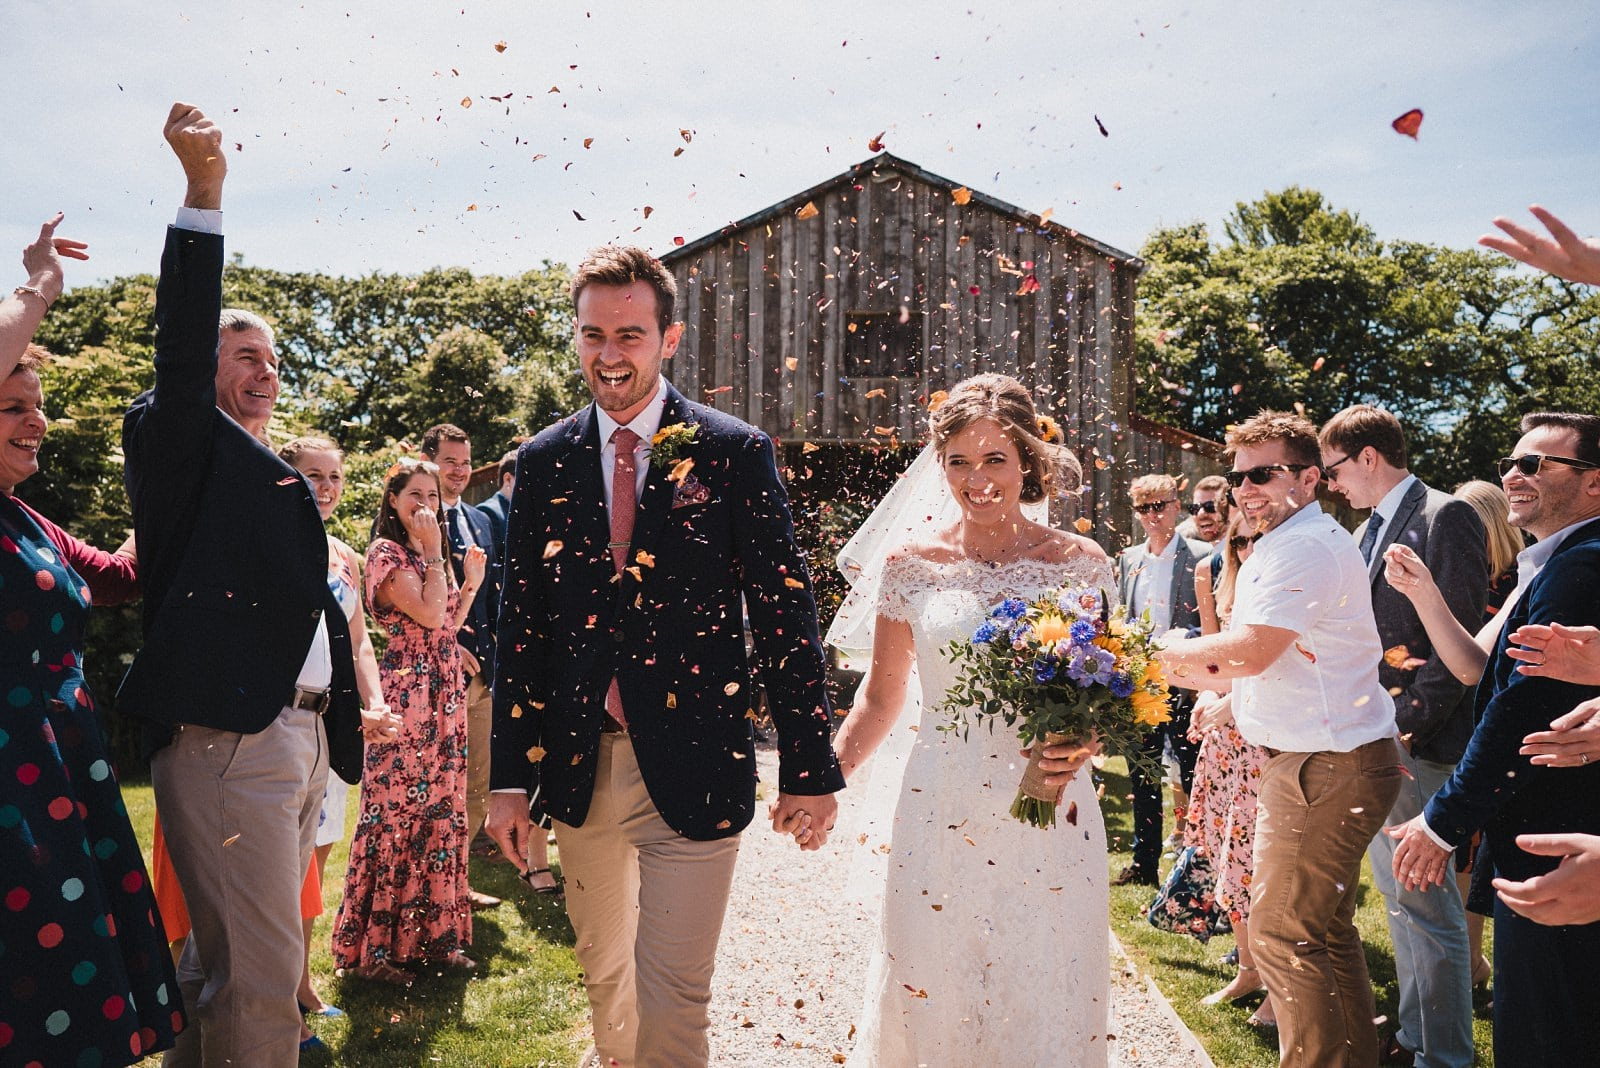 Wedding confetti run photographed at Nancarrow Farm